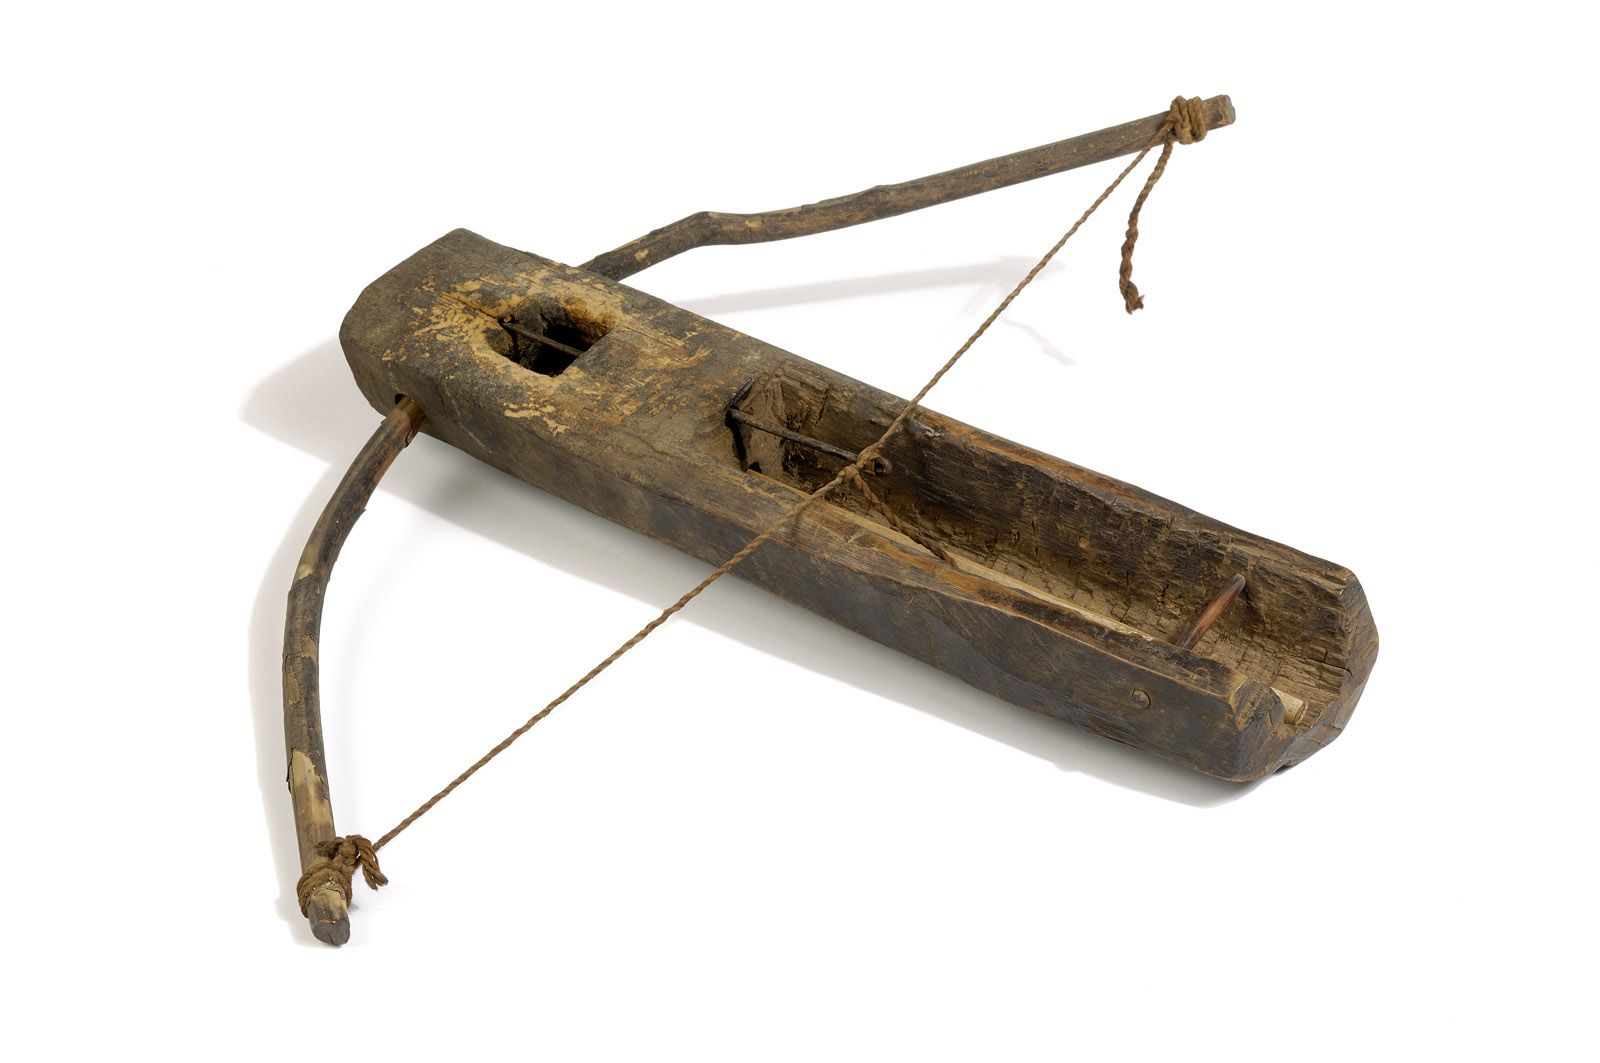 Wooden rat trap from Nigeria which dates from 1900 – 1917. Charles Partridge Collection, World Collection, Ipswich.